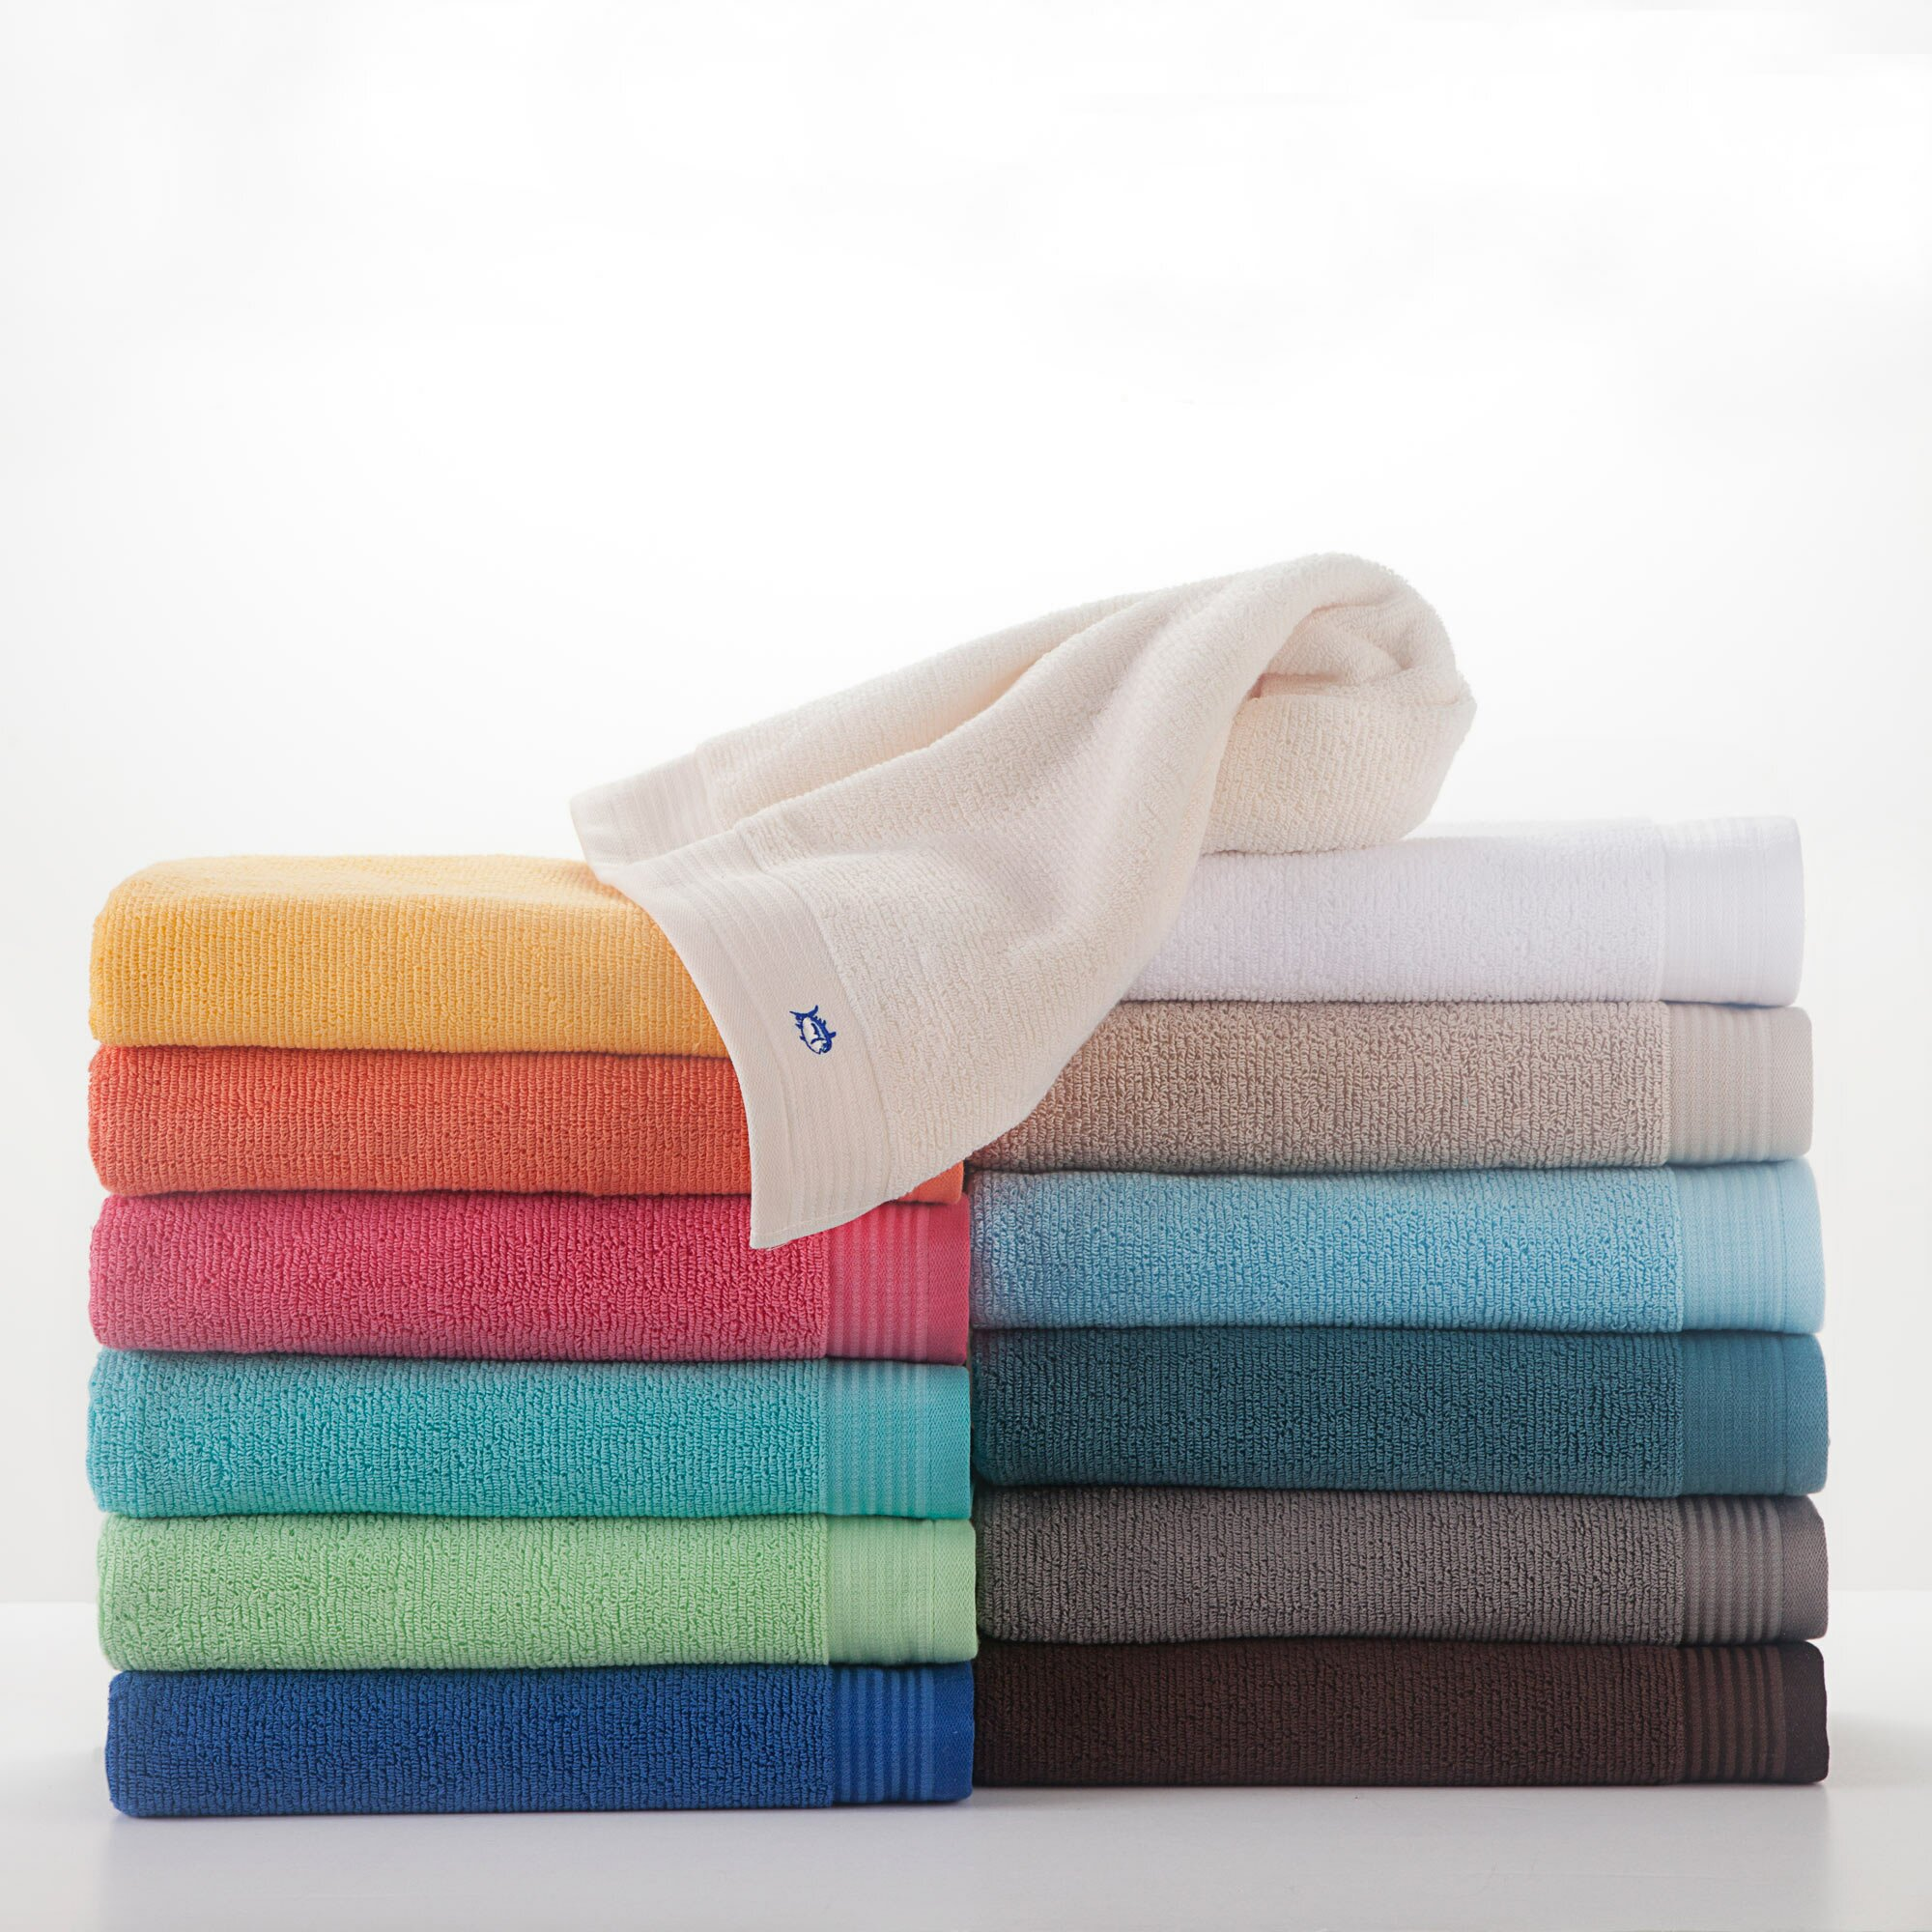 Decorative Hand Towels For Powder Room Southern Tide Performance Hand Towel Reviews Wayfair